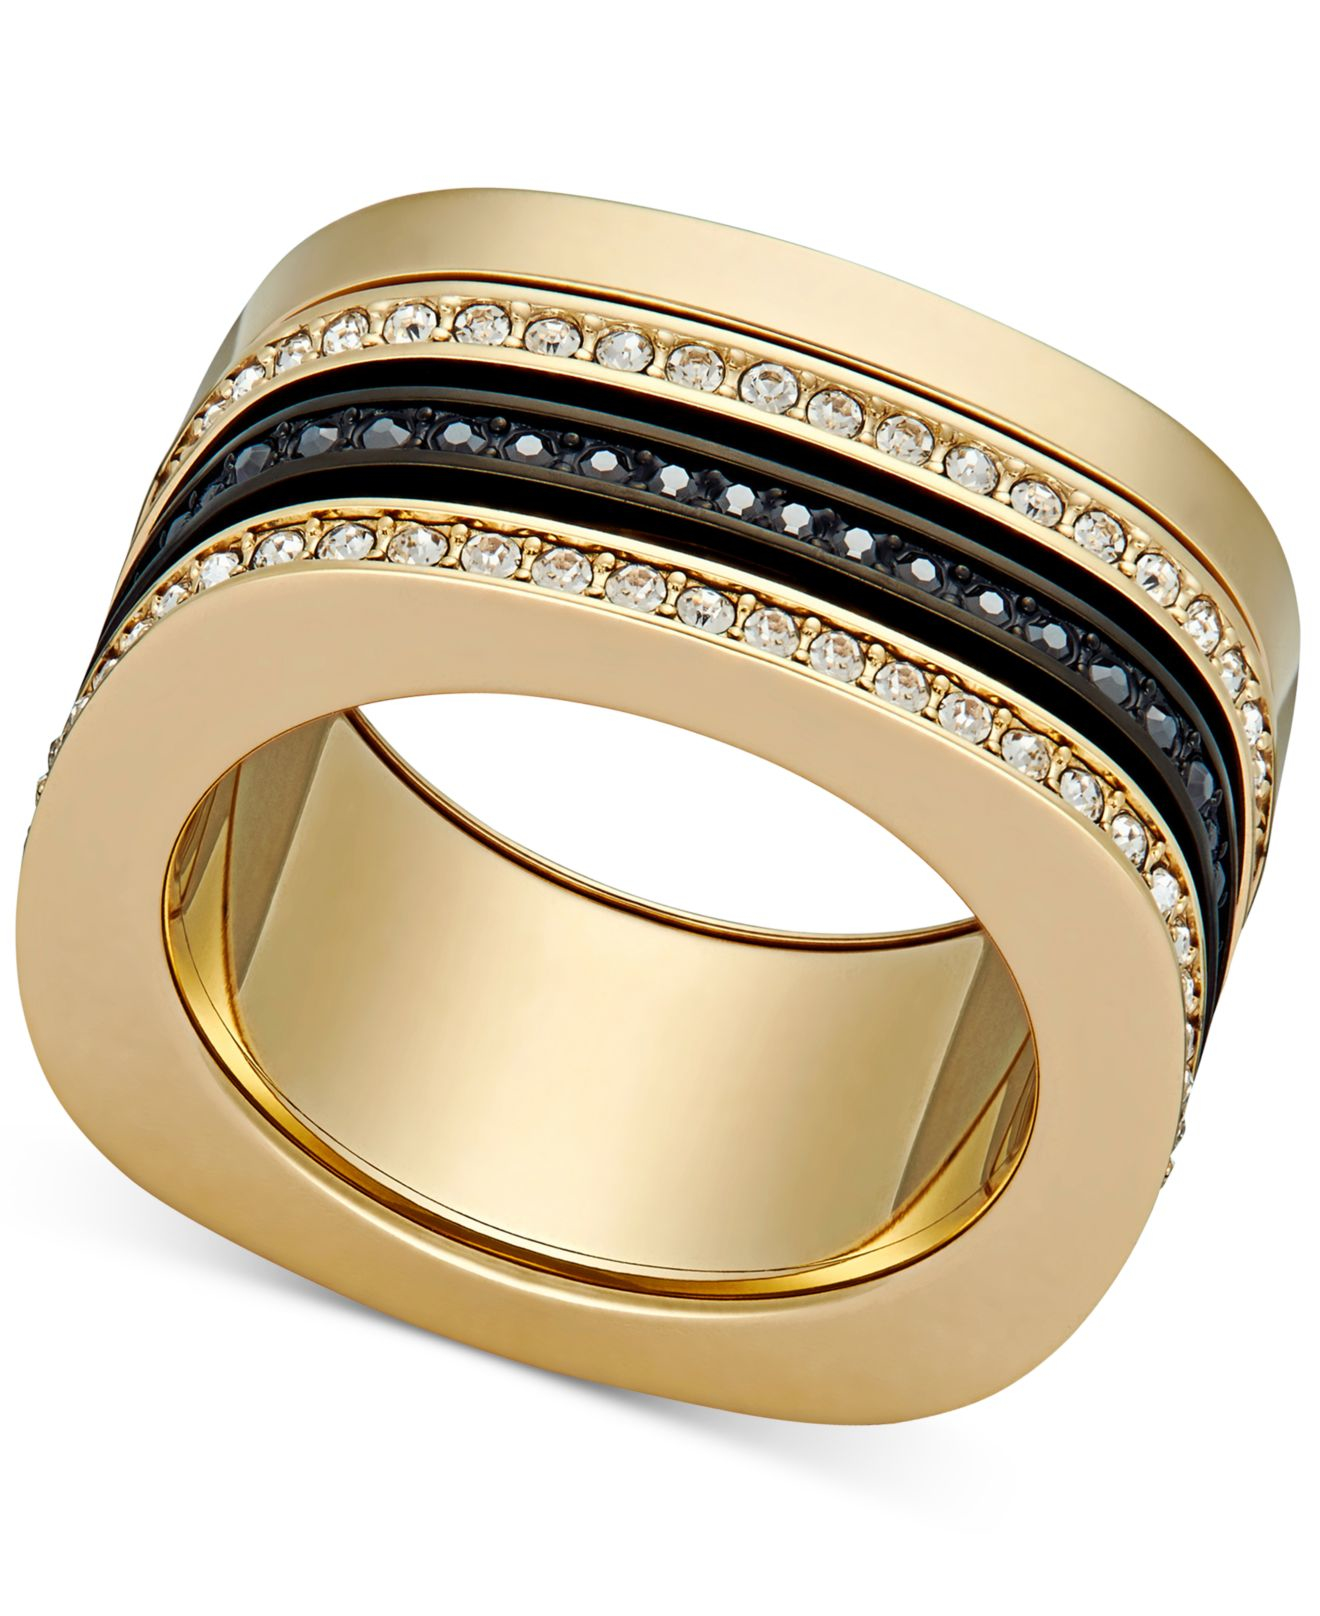 581bcf4a7 Swarovski Vio Two-tone Crystal Stackable Ring in Metallic - Lyst